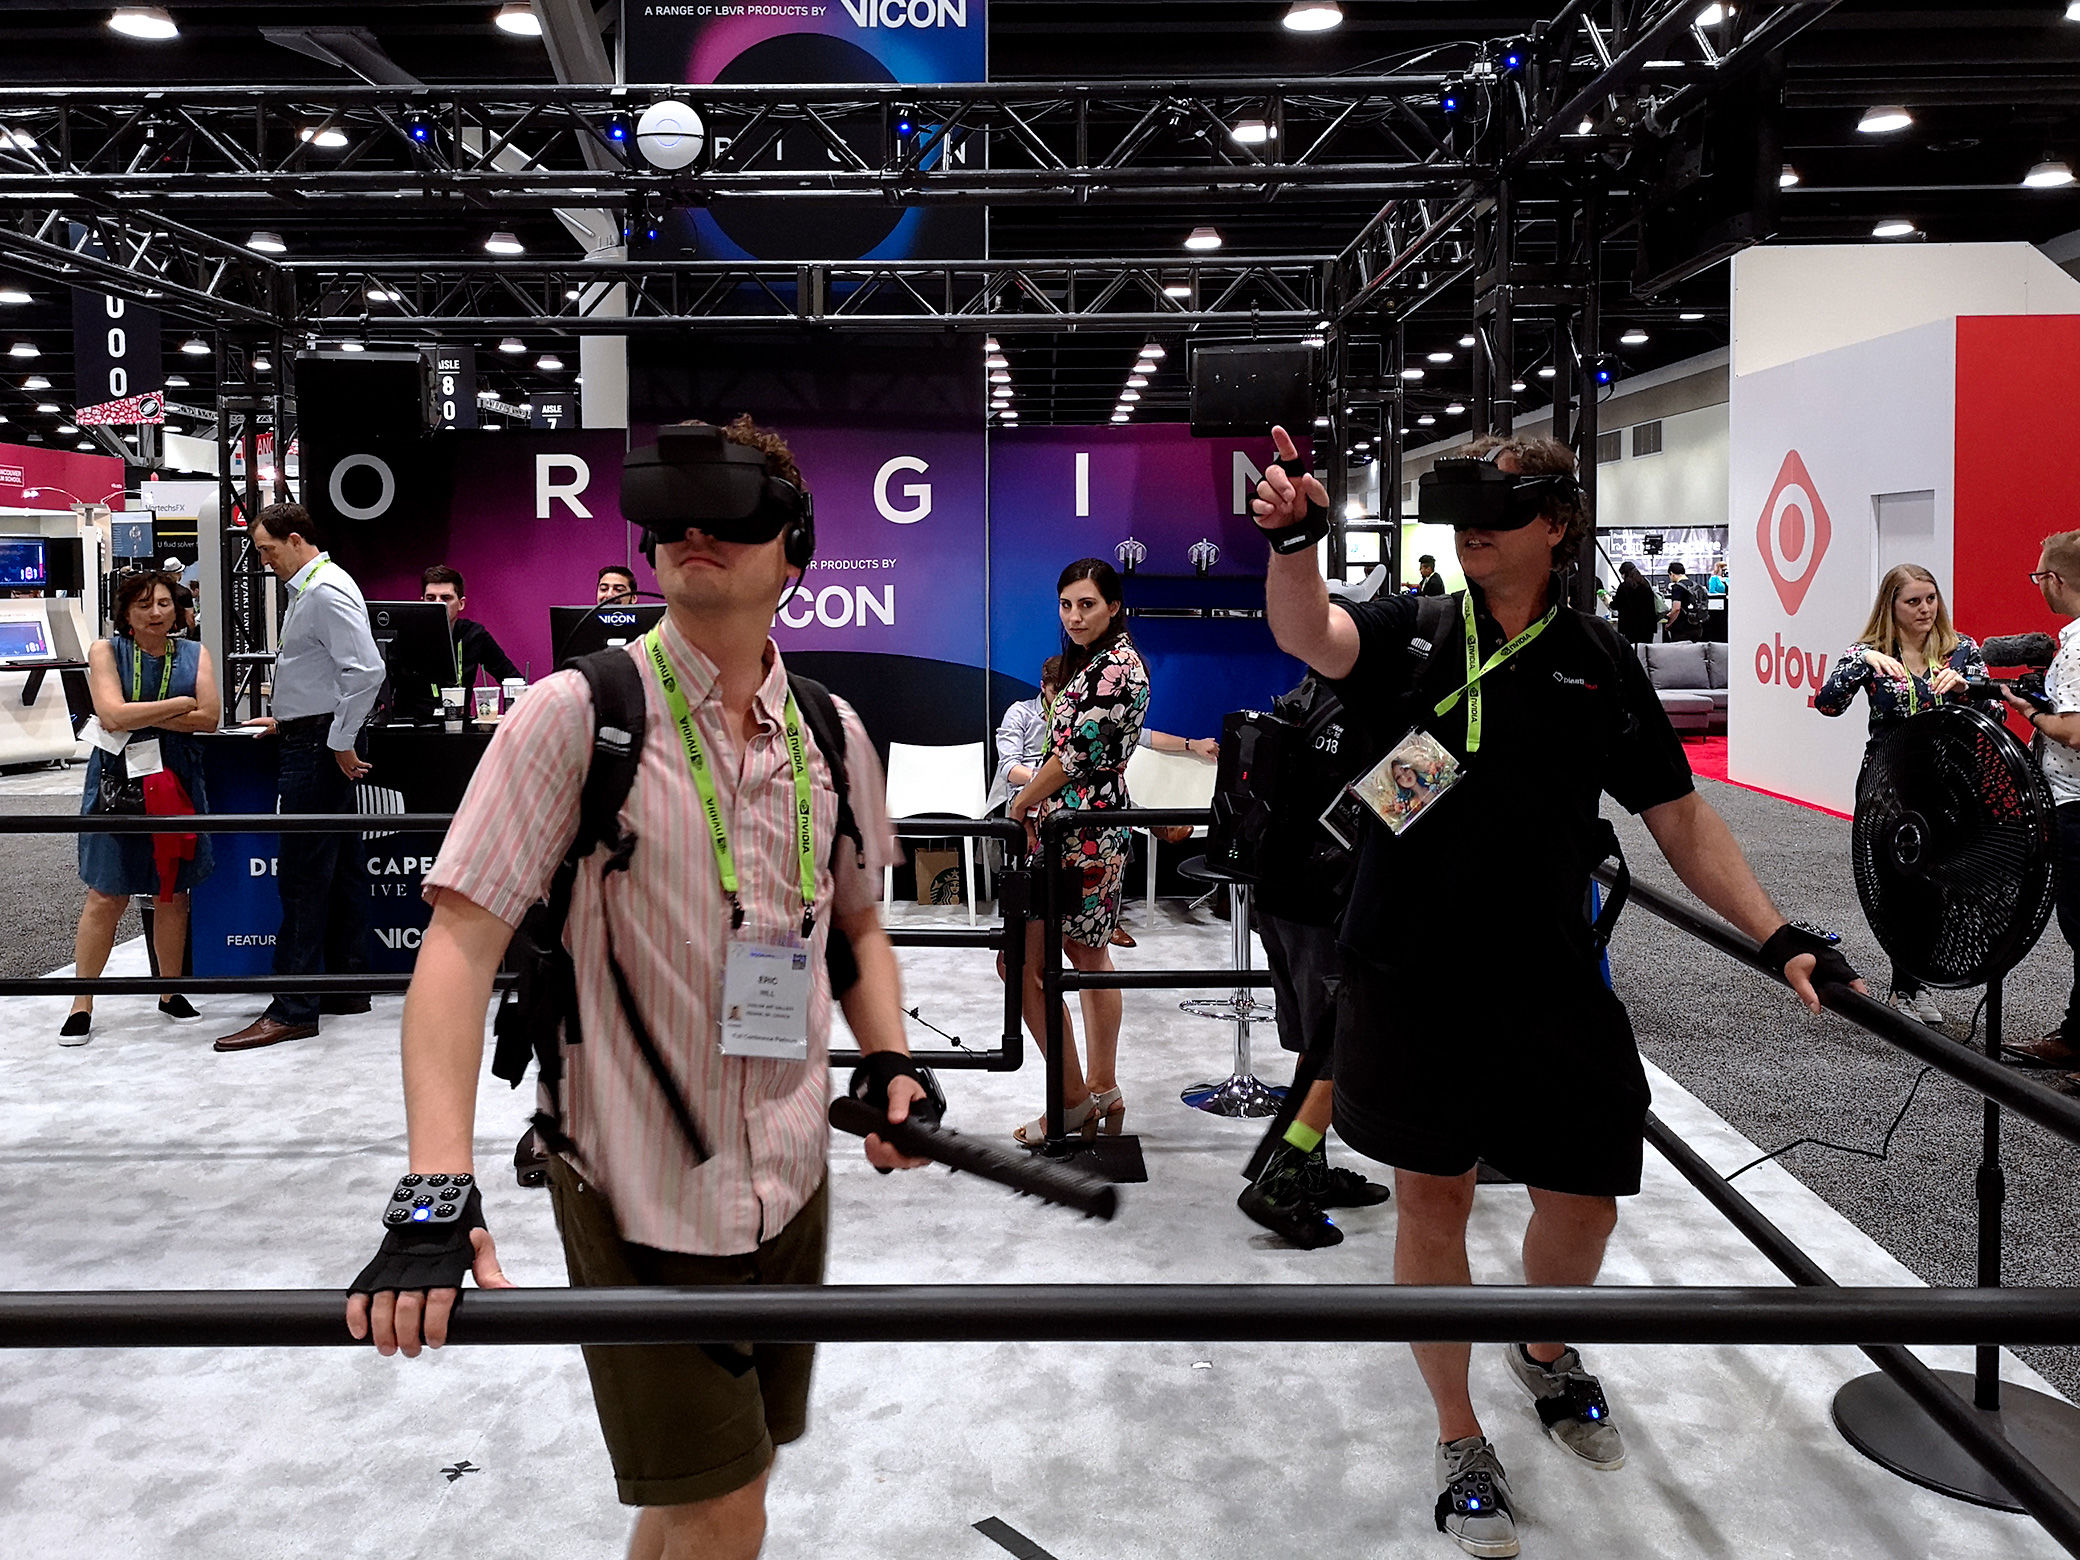 Is this the future of VR? - Features - Digital Arts